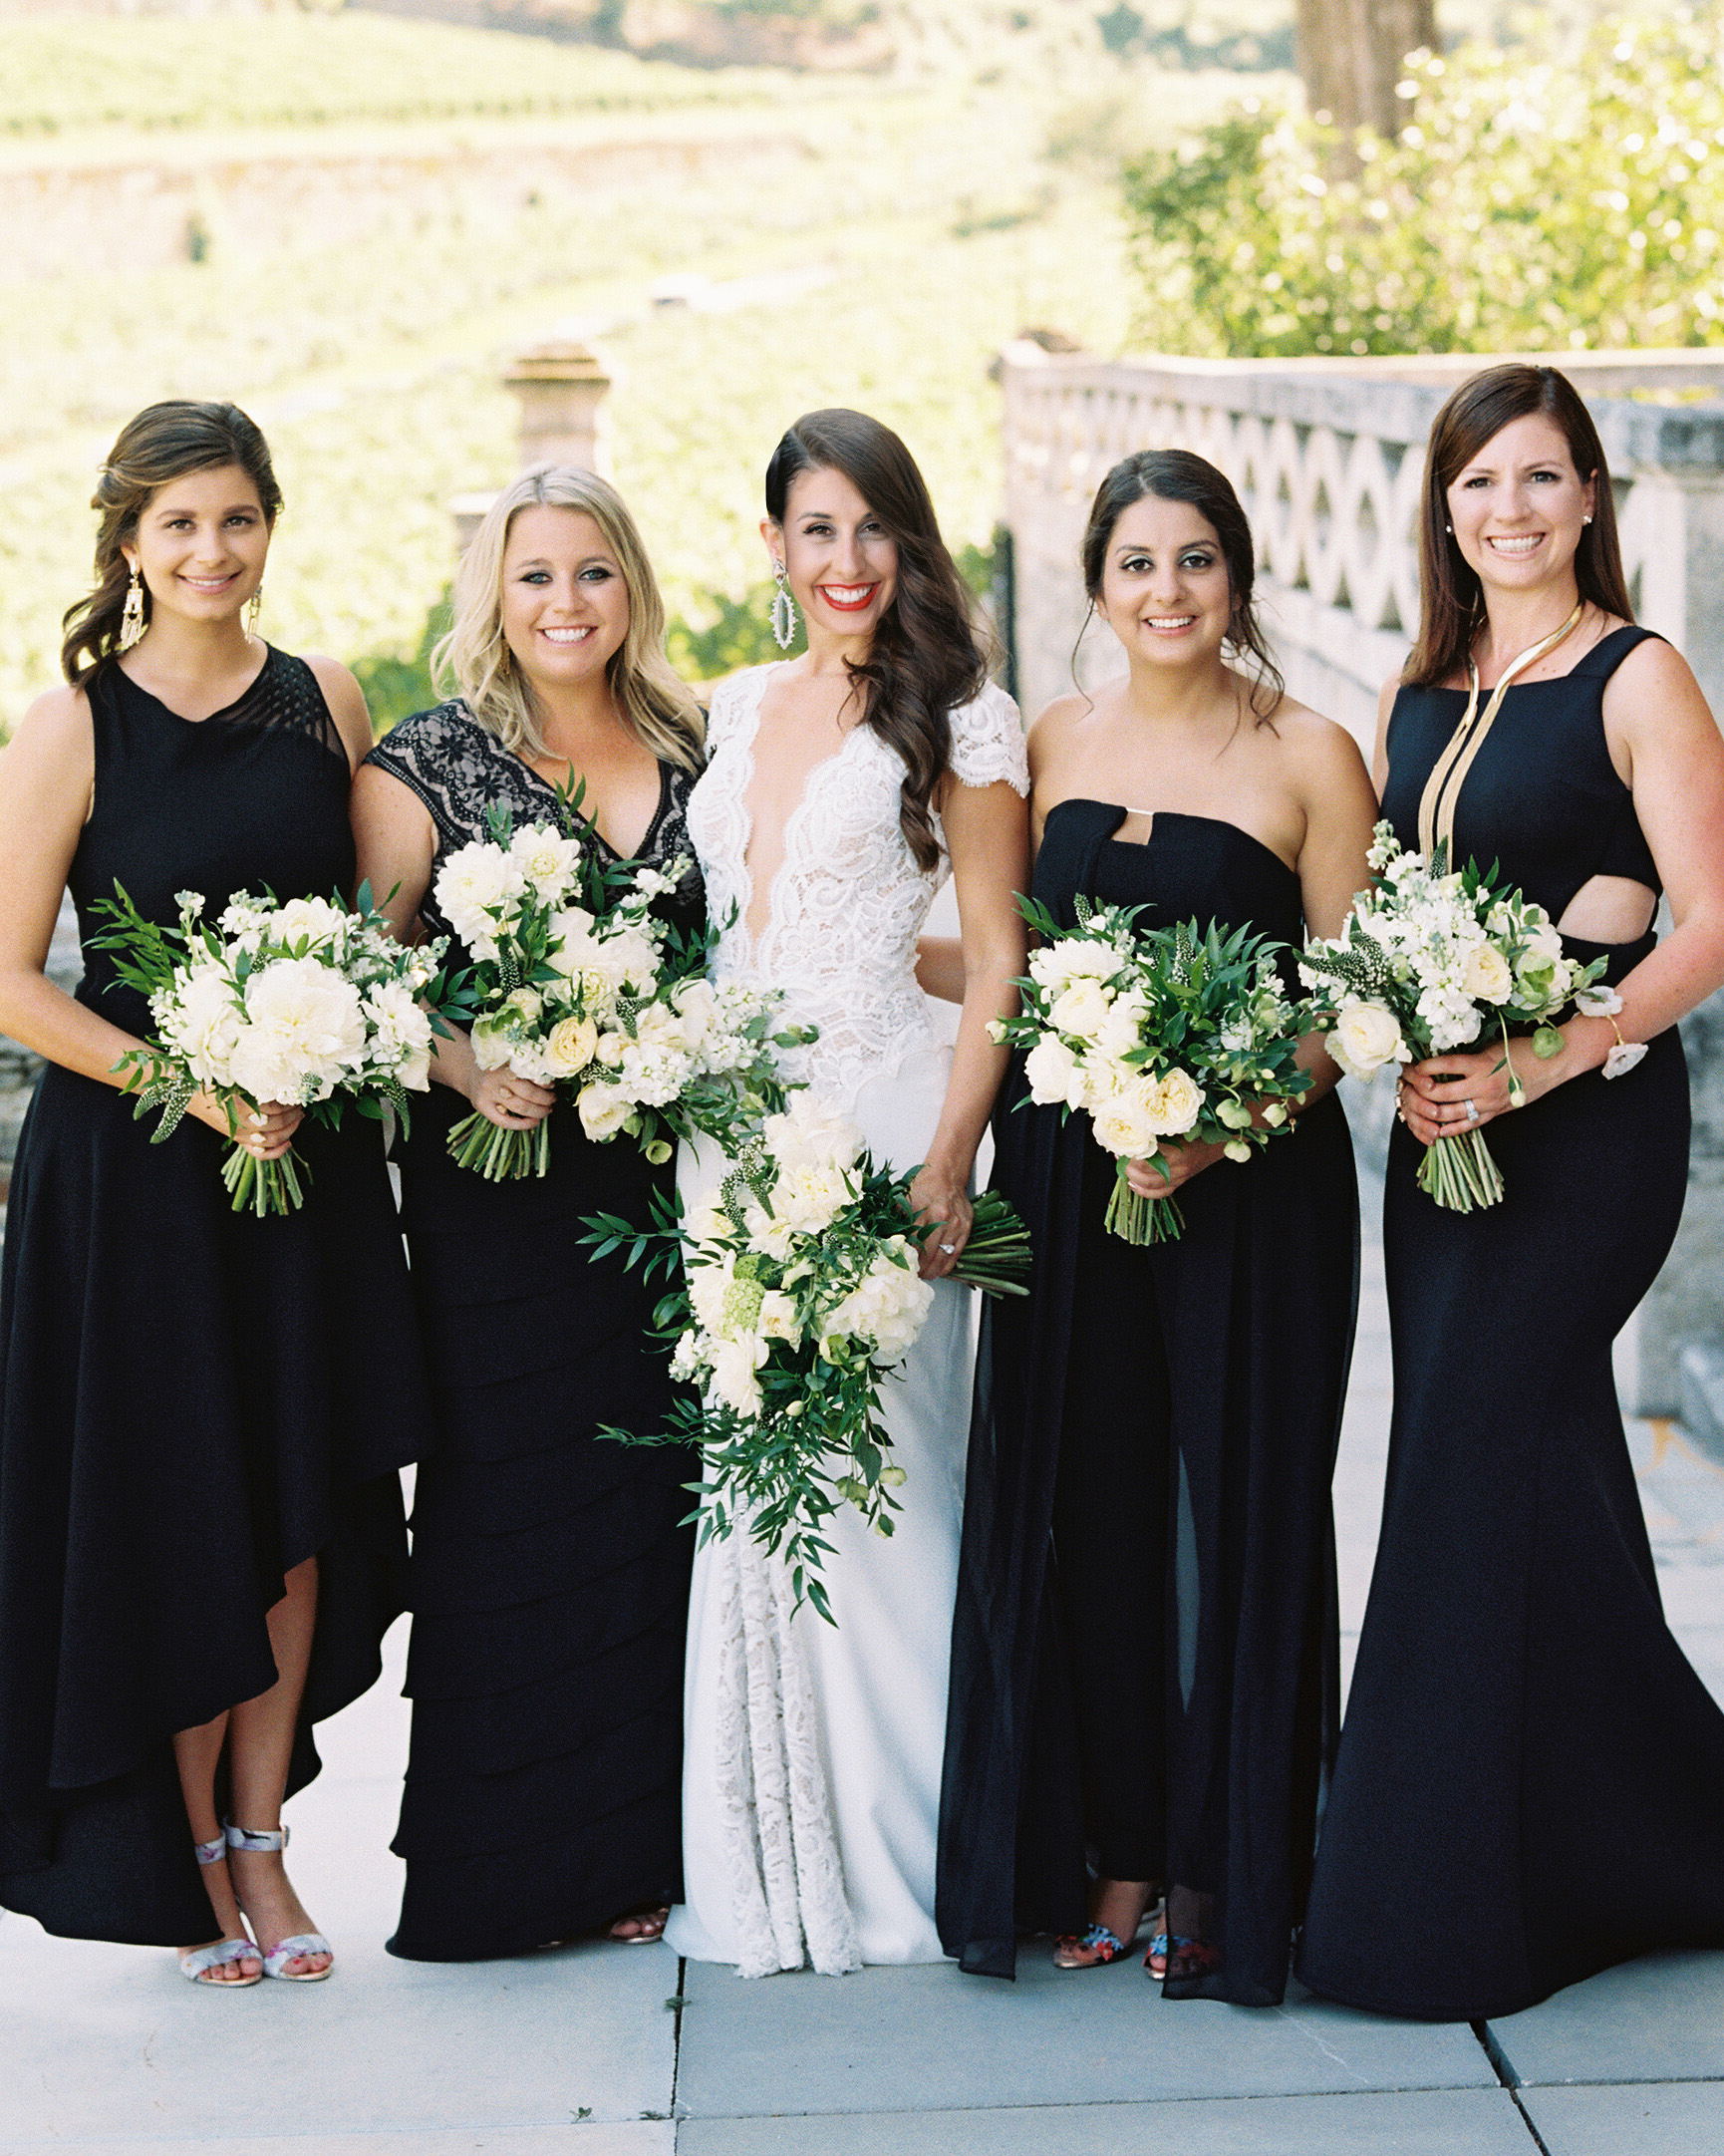 jeannette taylor wedding portugal bridal party